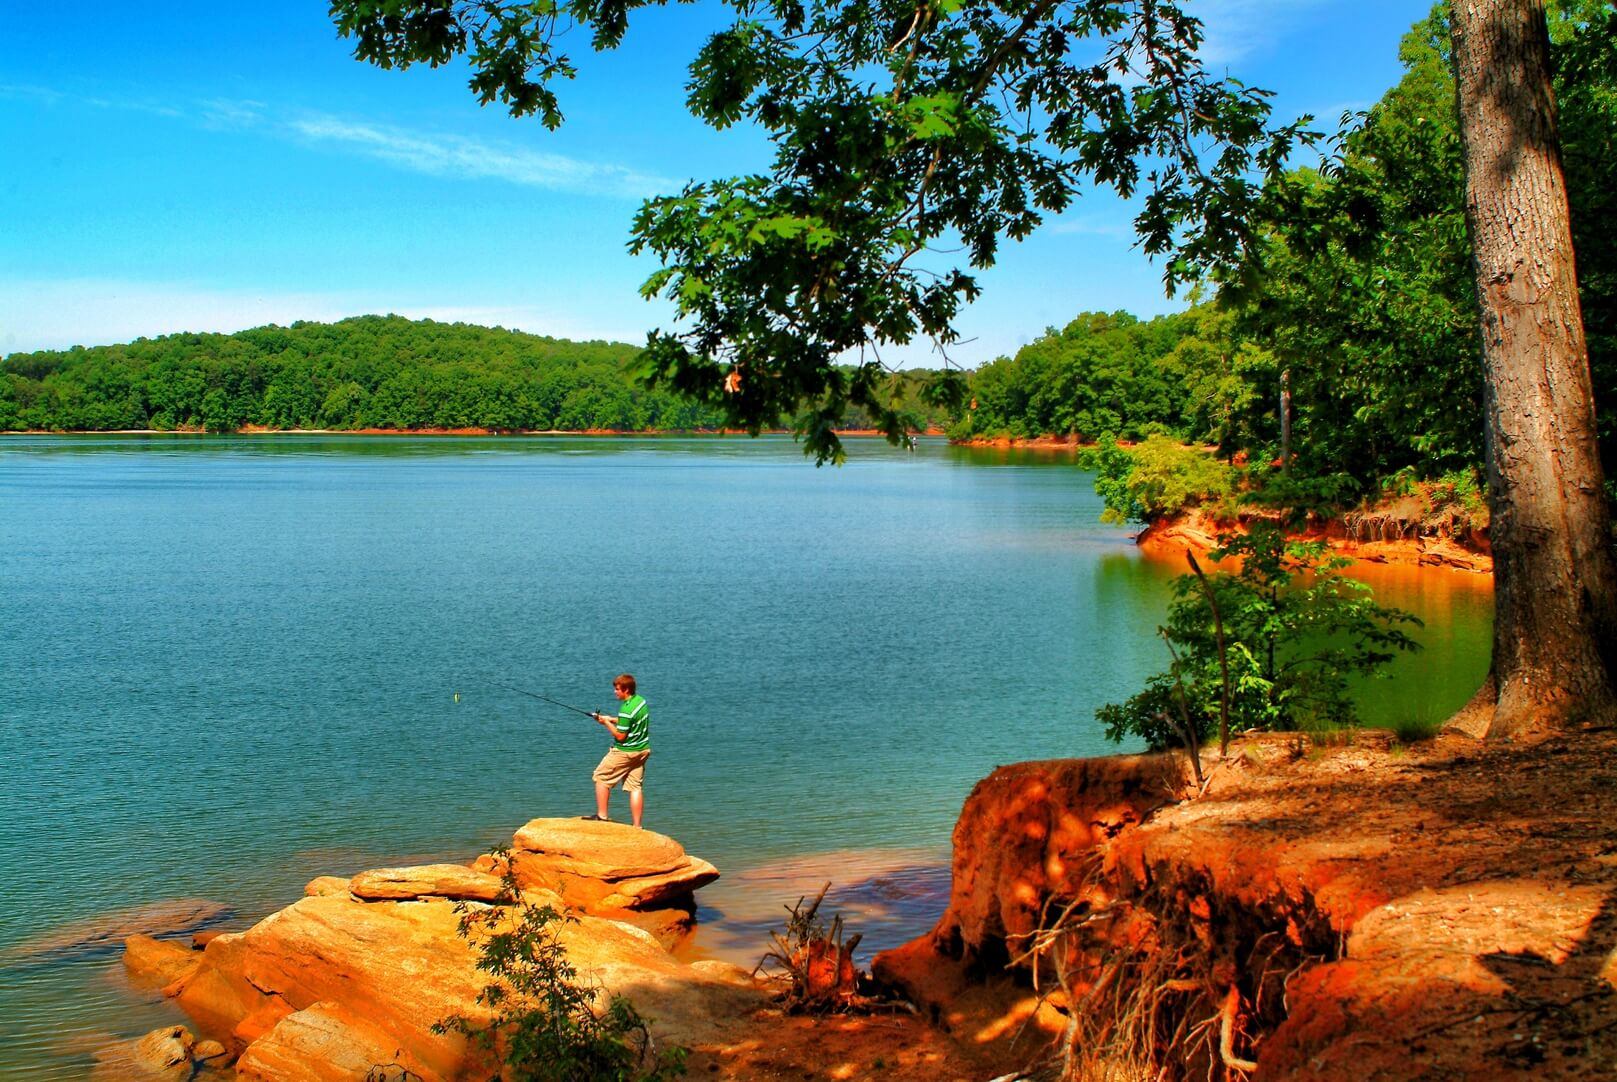 Lake Hartwell, South Carolina. South Carolina Kayaking